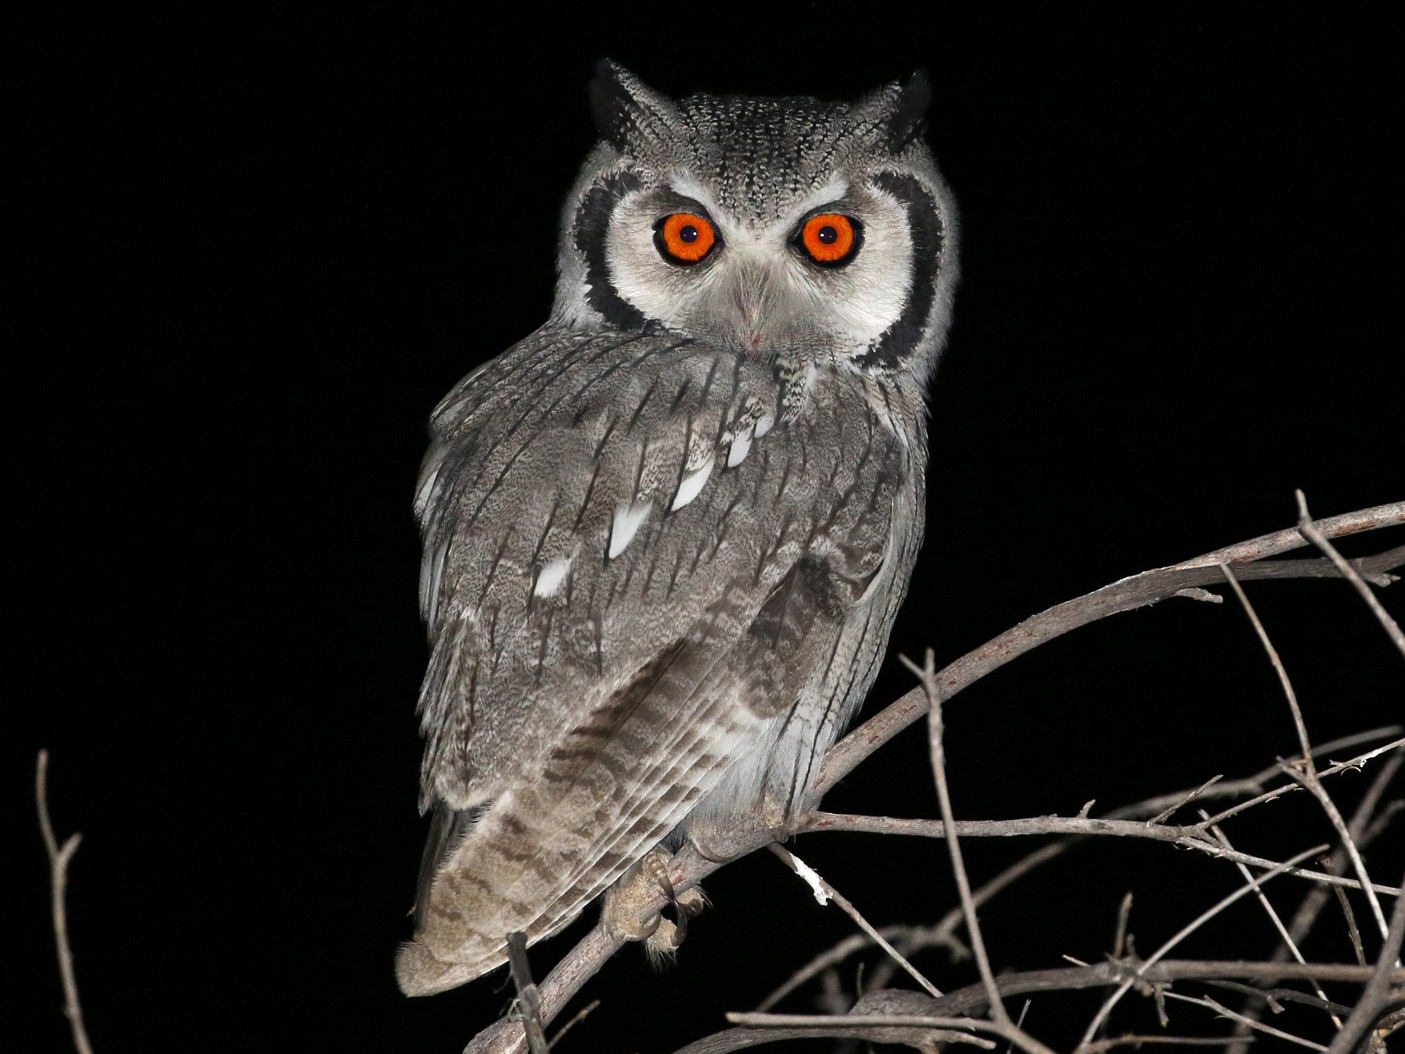 Southern White-faced Owl - Charley Hesse TROPICAL BIRDING